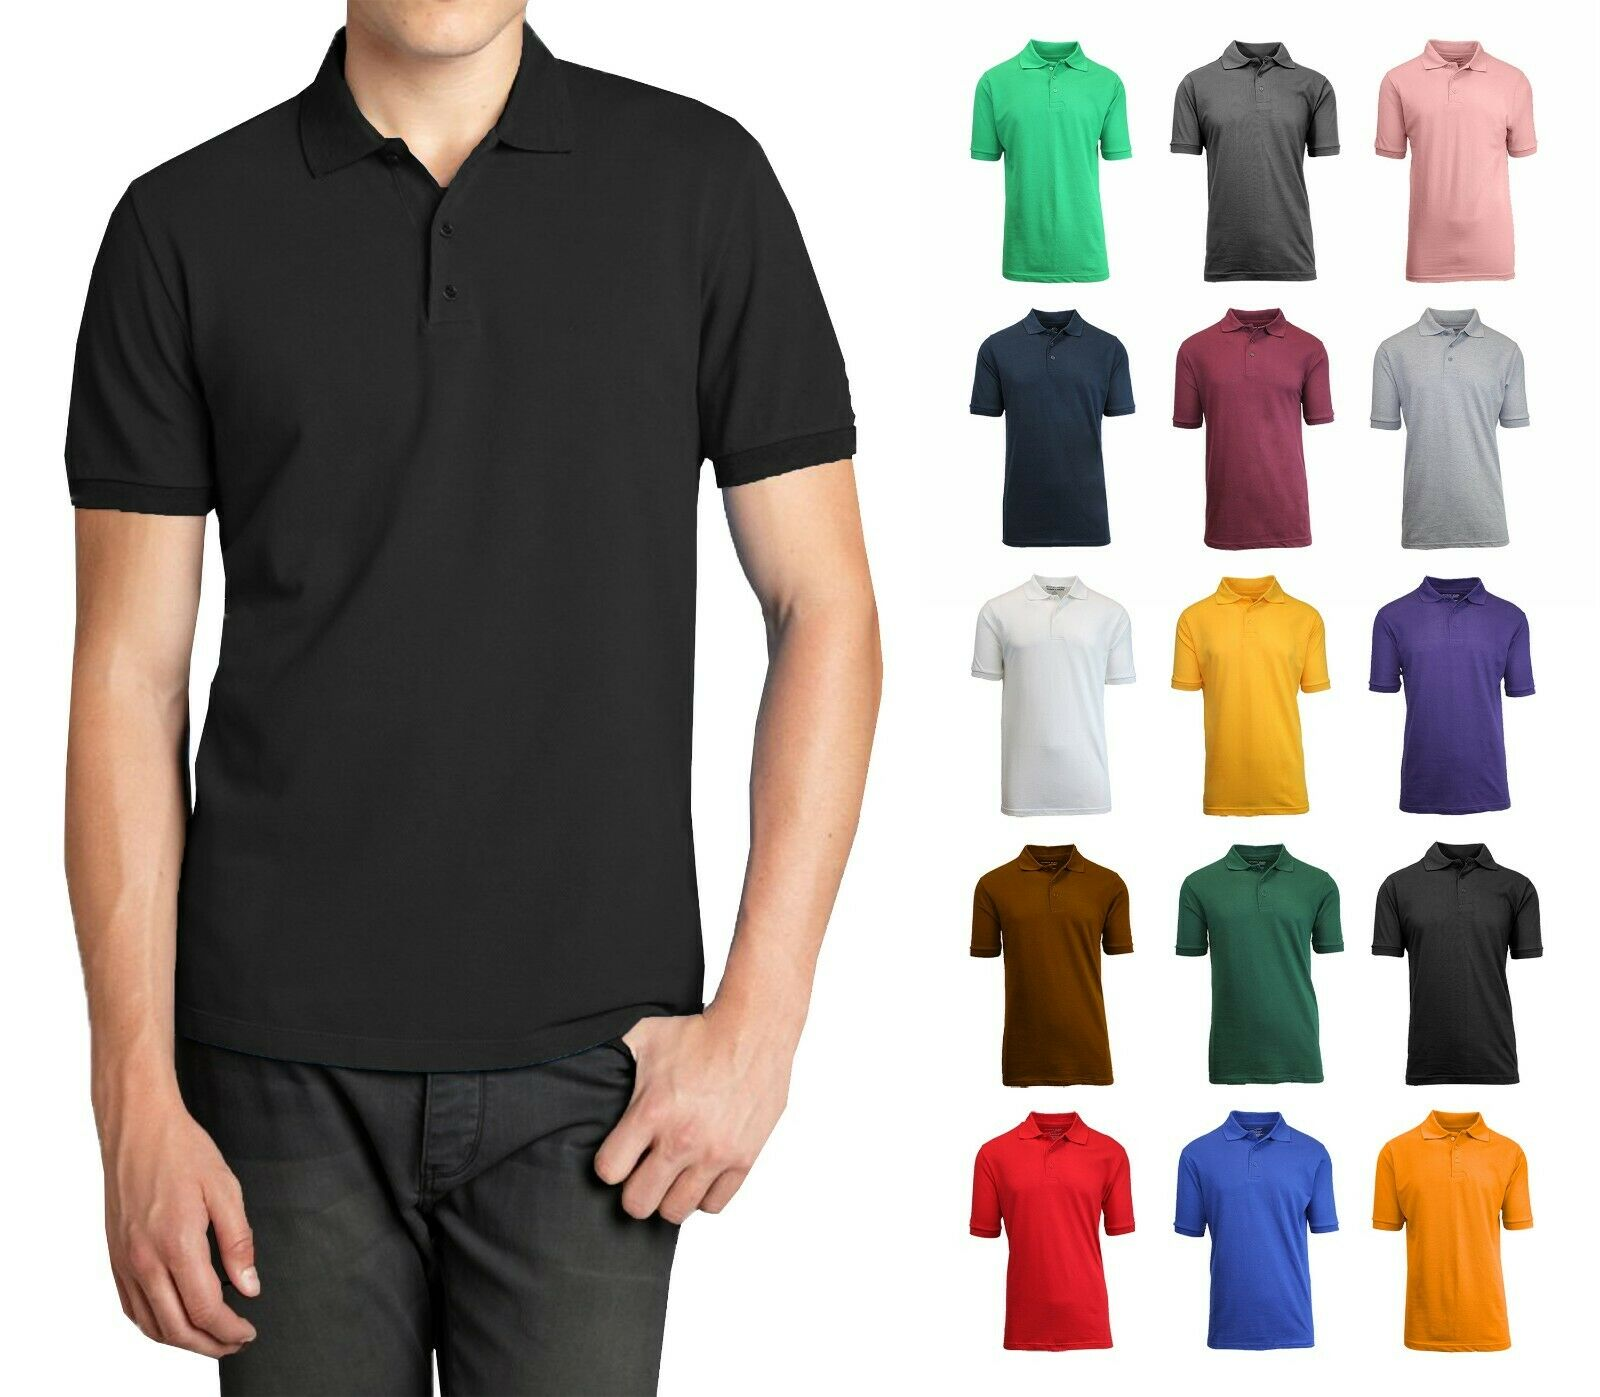 Men Polo Shirt Size S M L XL XXL New Standard Neck Classic NWT Uniform Lounge Casual Button-Down Shirts